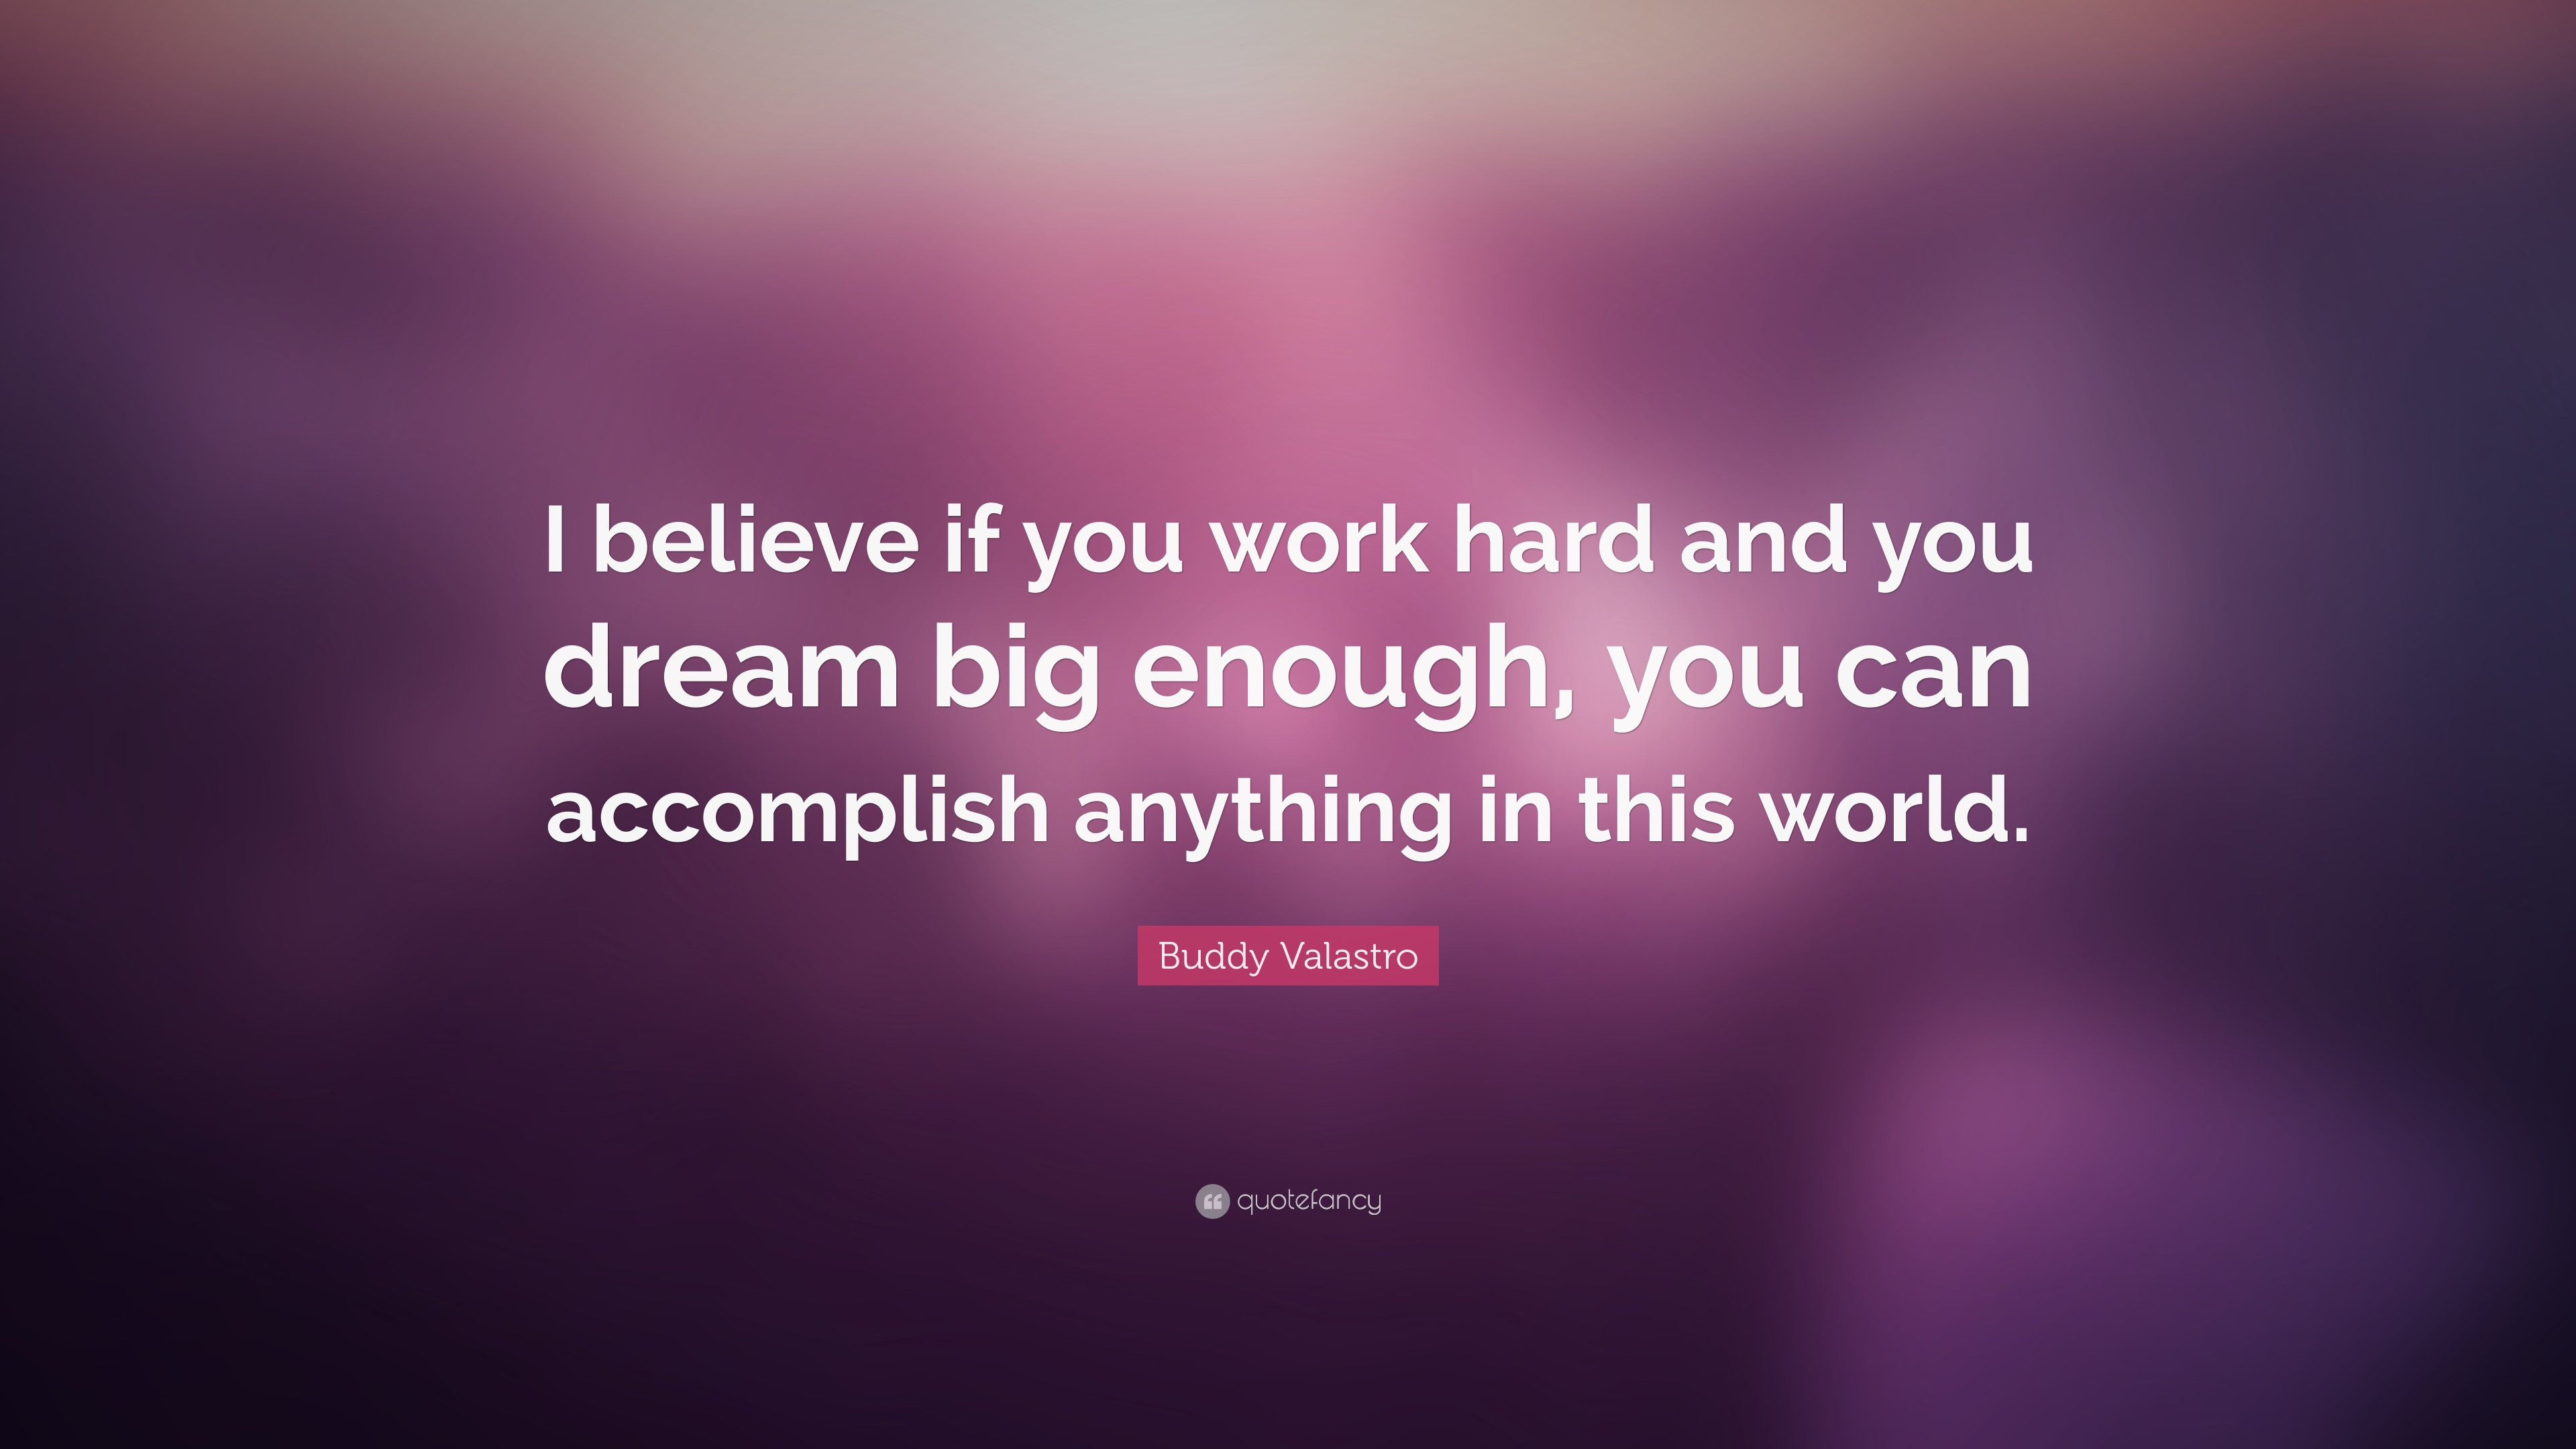 Buddy Valastro Quote I Believe If You Work Hard And You Dream Big